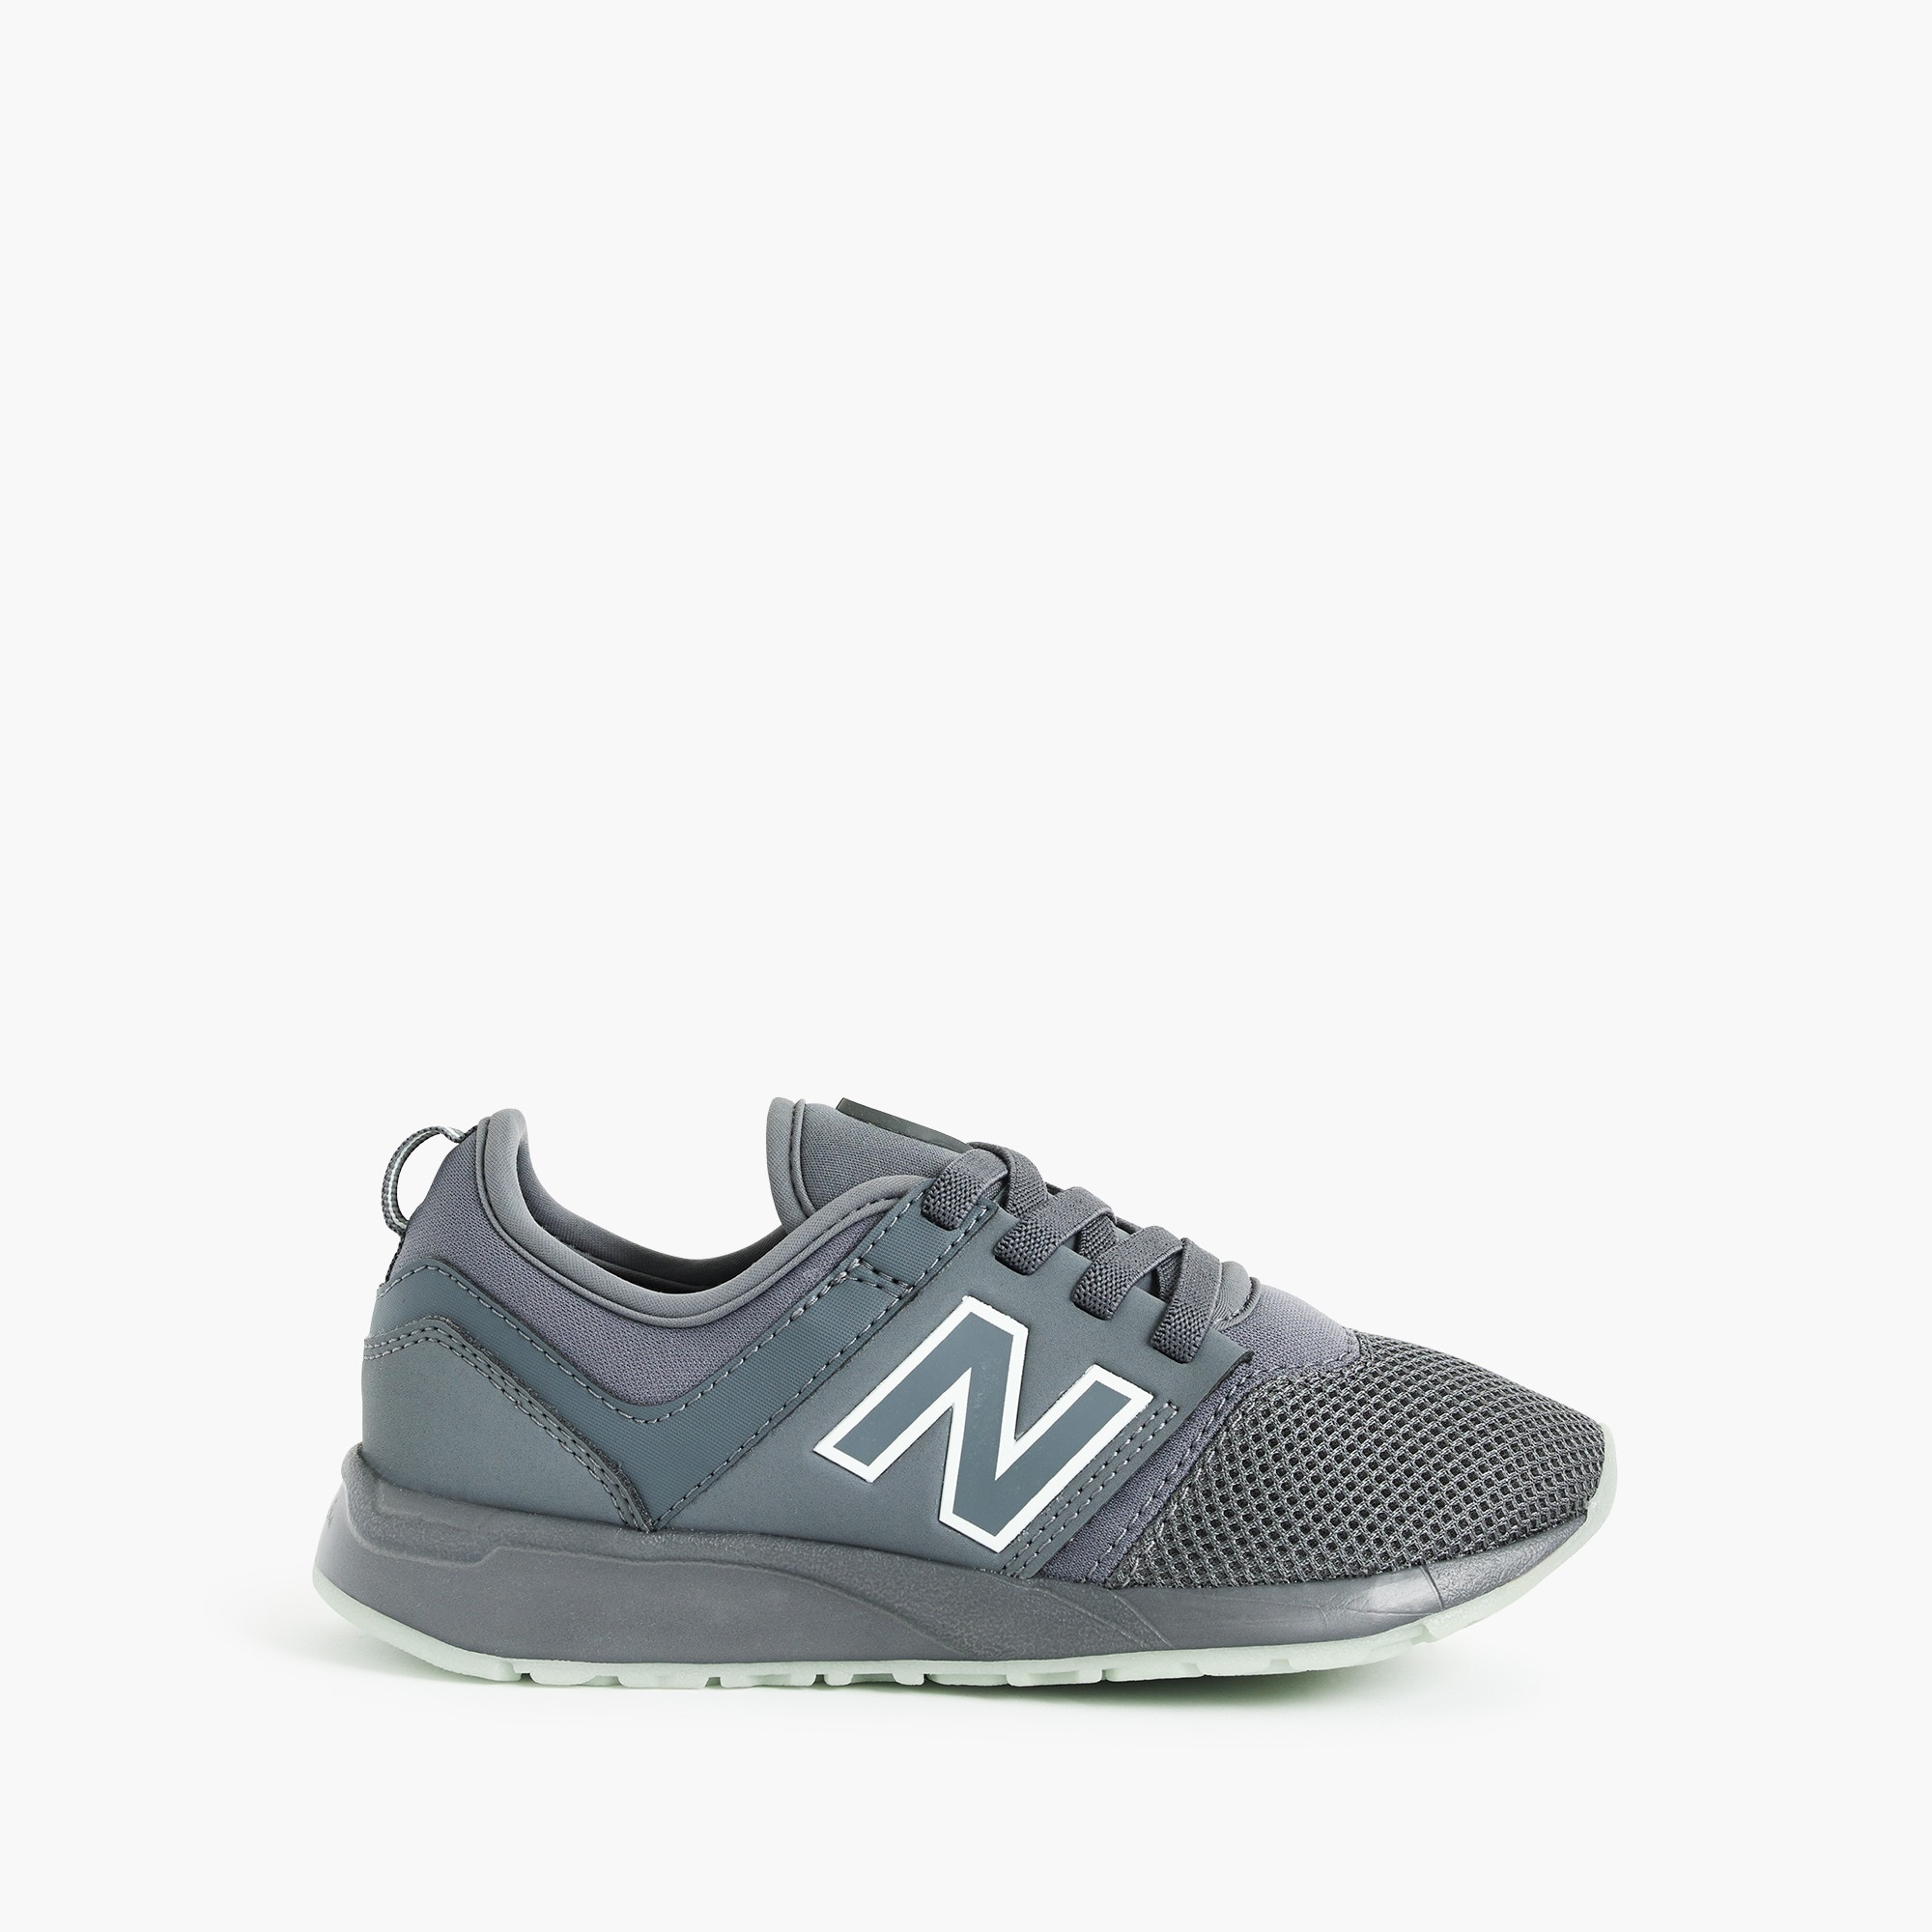 Kids' New Balance® for crewcuts 24/7 sneakers with no-tie laces boy j.crew in good company c